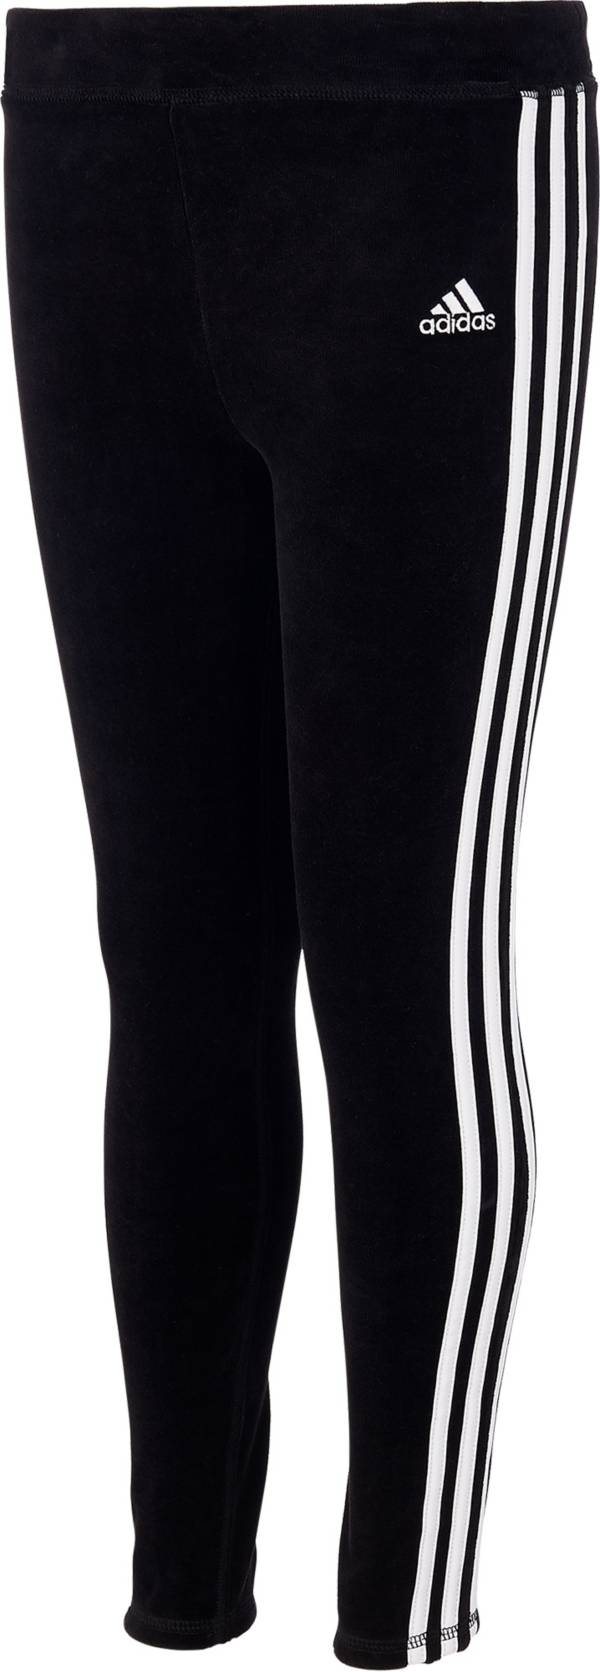 adidas Girls' Velour Stripe Tights product image